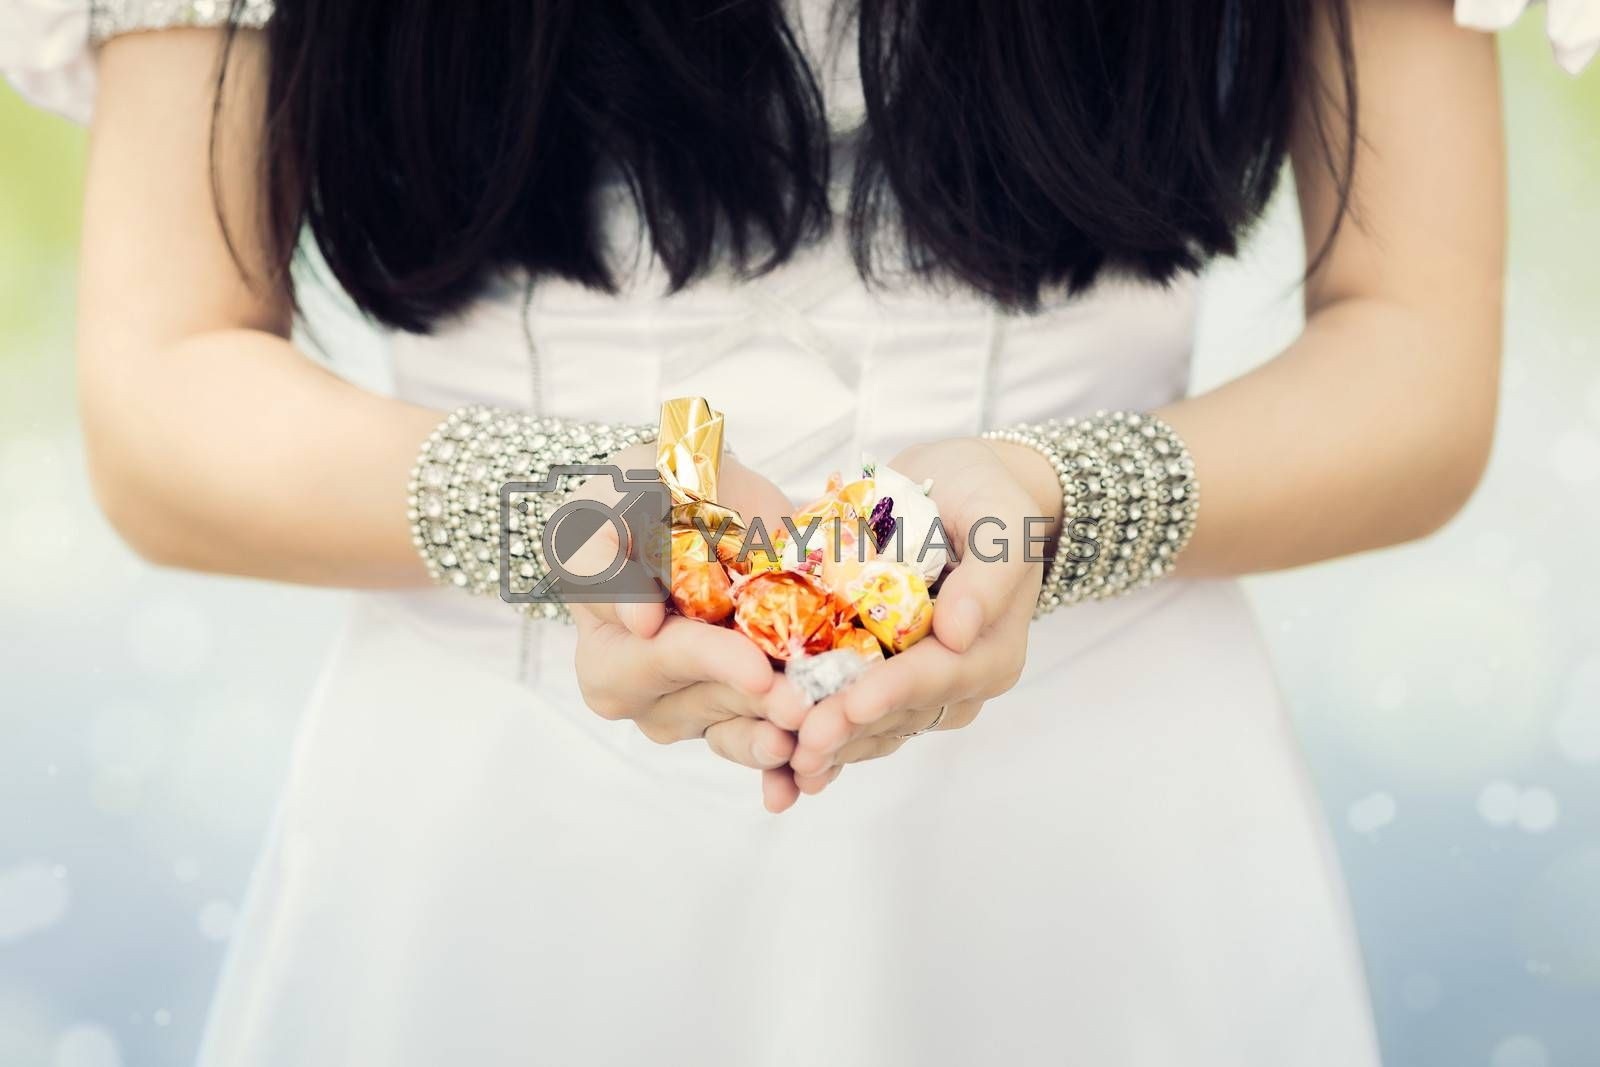 Close up on girl's hands offering candy.